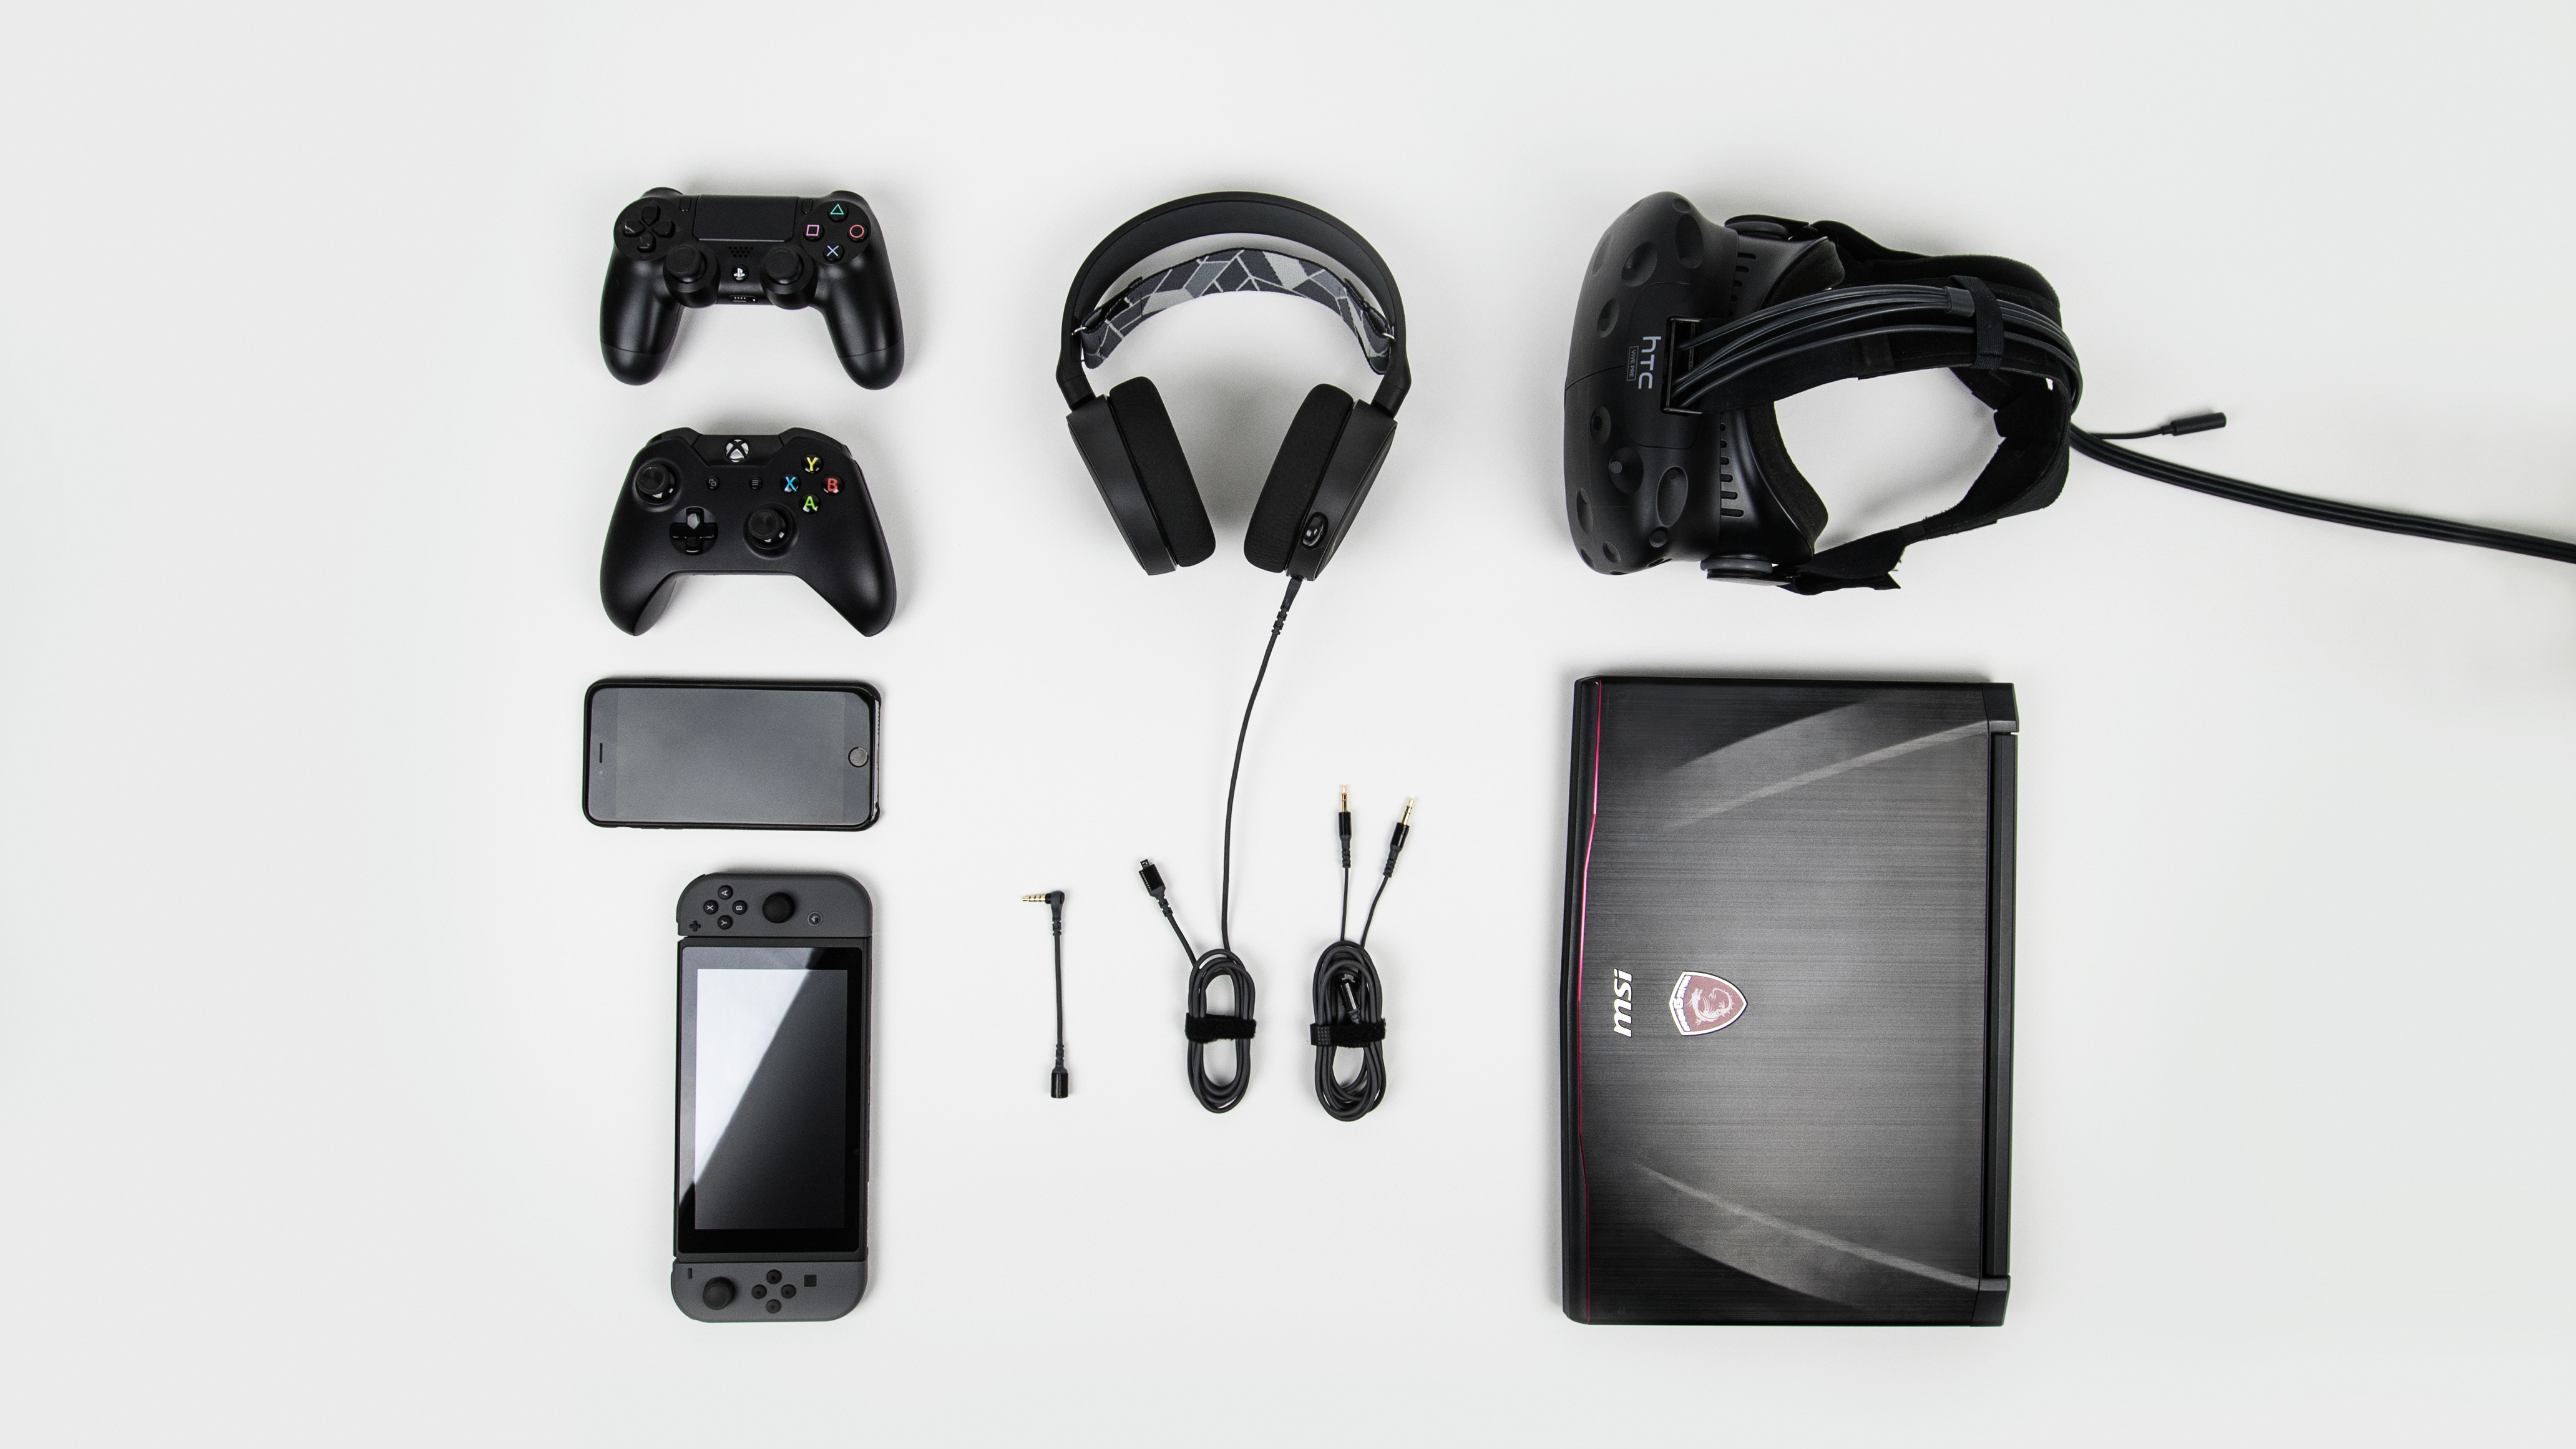 Neatly layed out PlayStation controller, XBOX controller, iPhone, Nintendo Switch, HTC Vive, MSI laptop, and SteelSeries headset with connectors